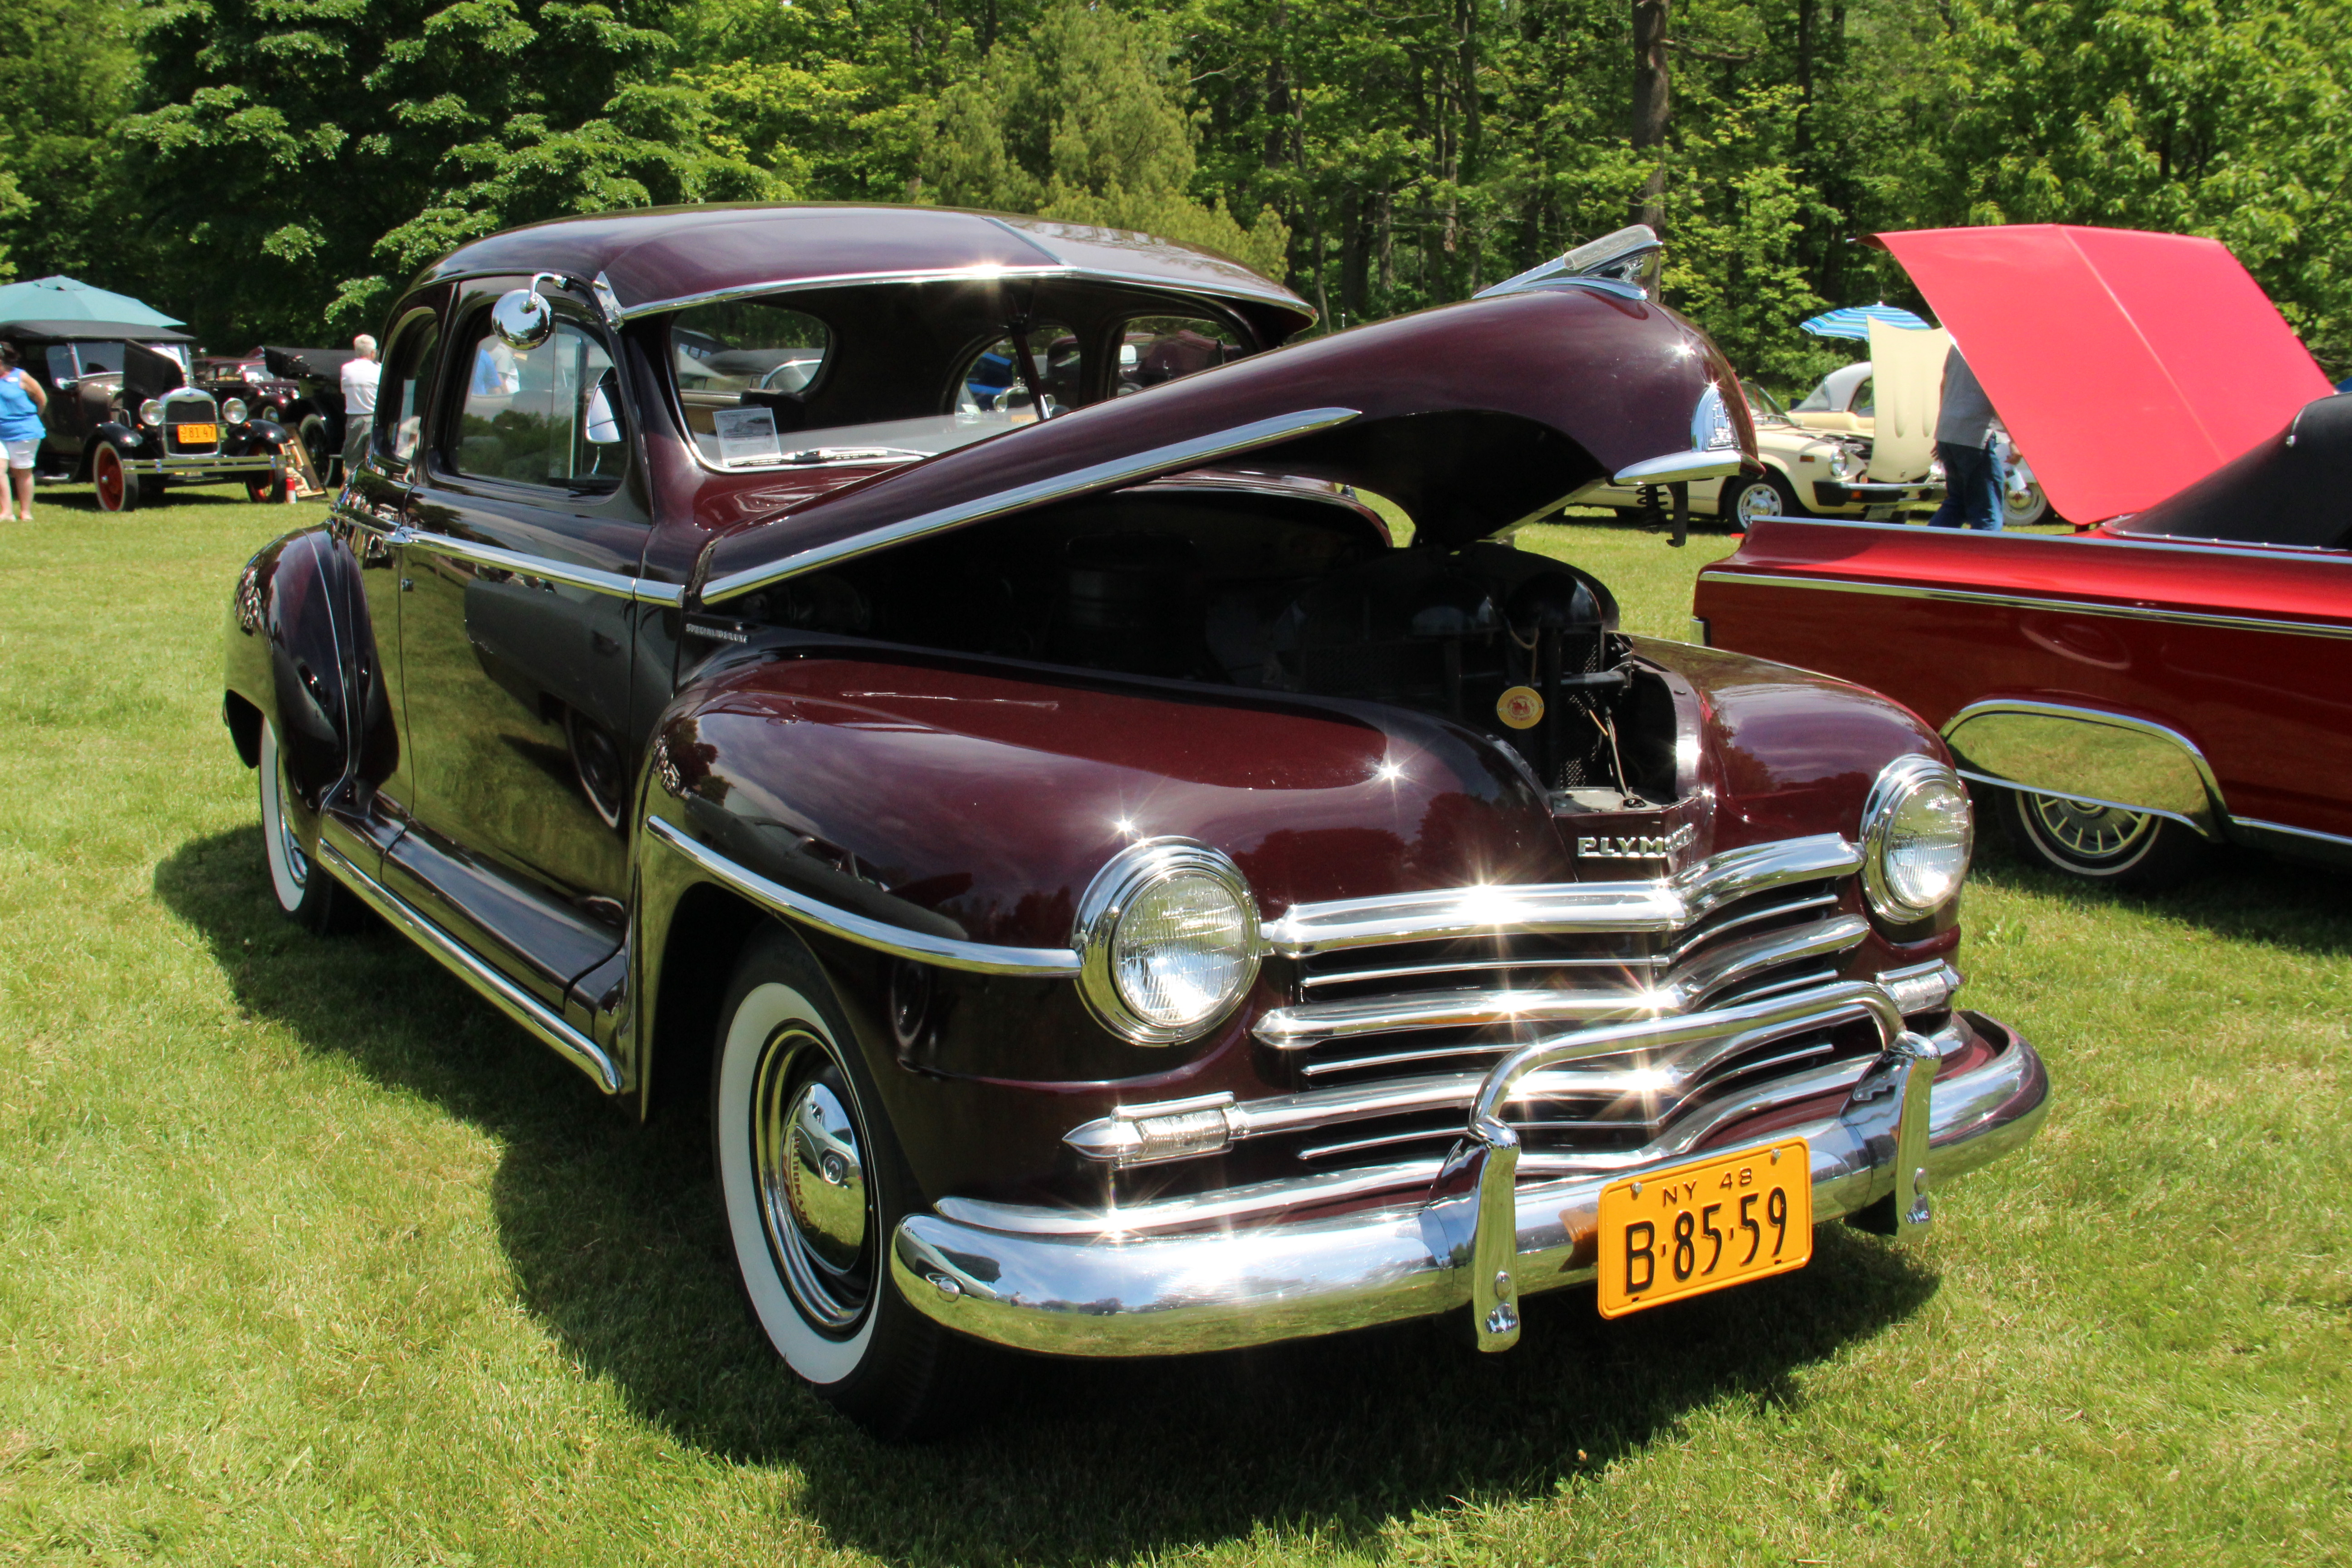 IMG_0663-Class-1B-Dave-Lechner-1948-Plymouth-Club-Coupe-LER